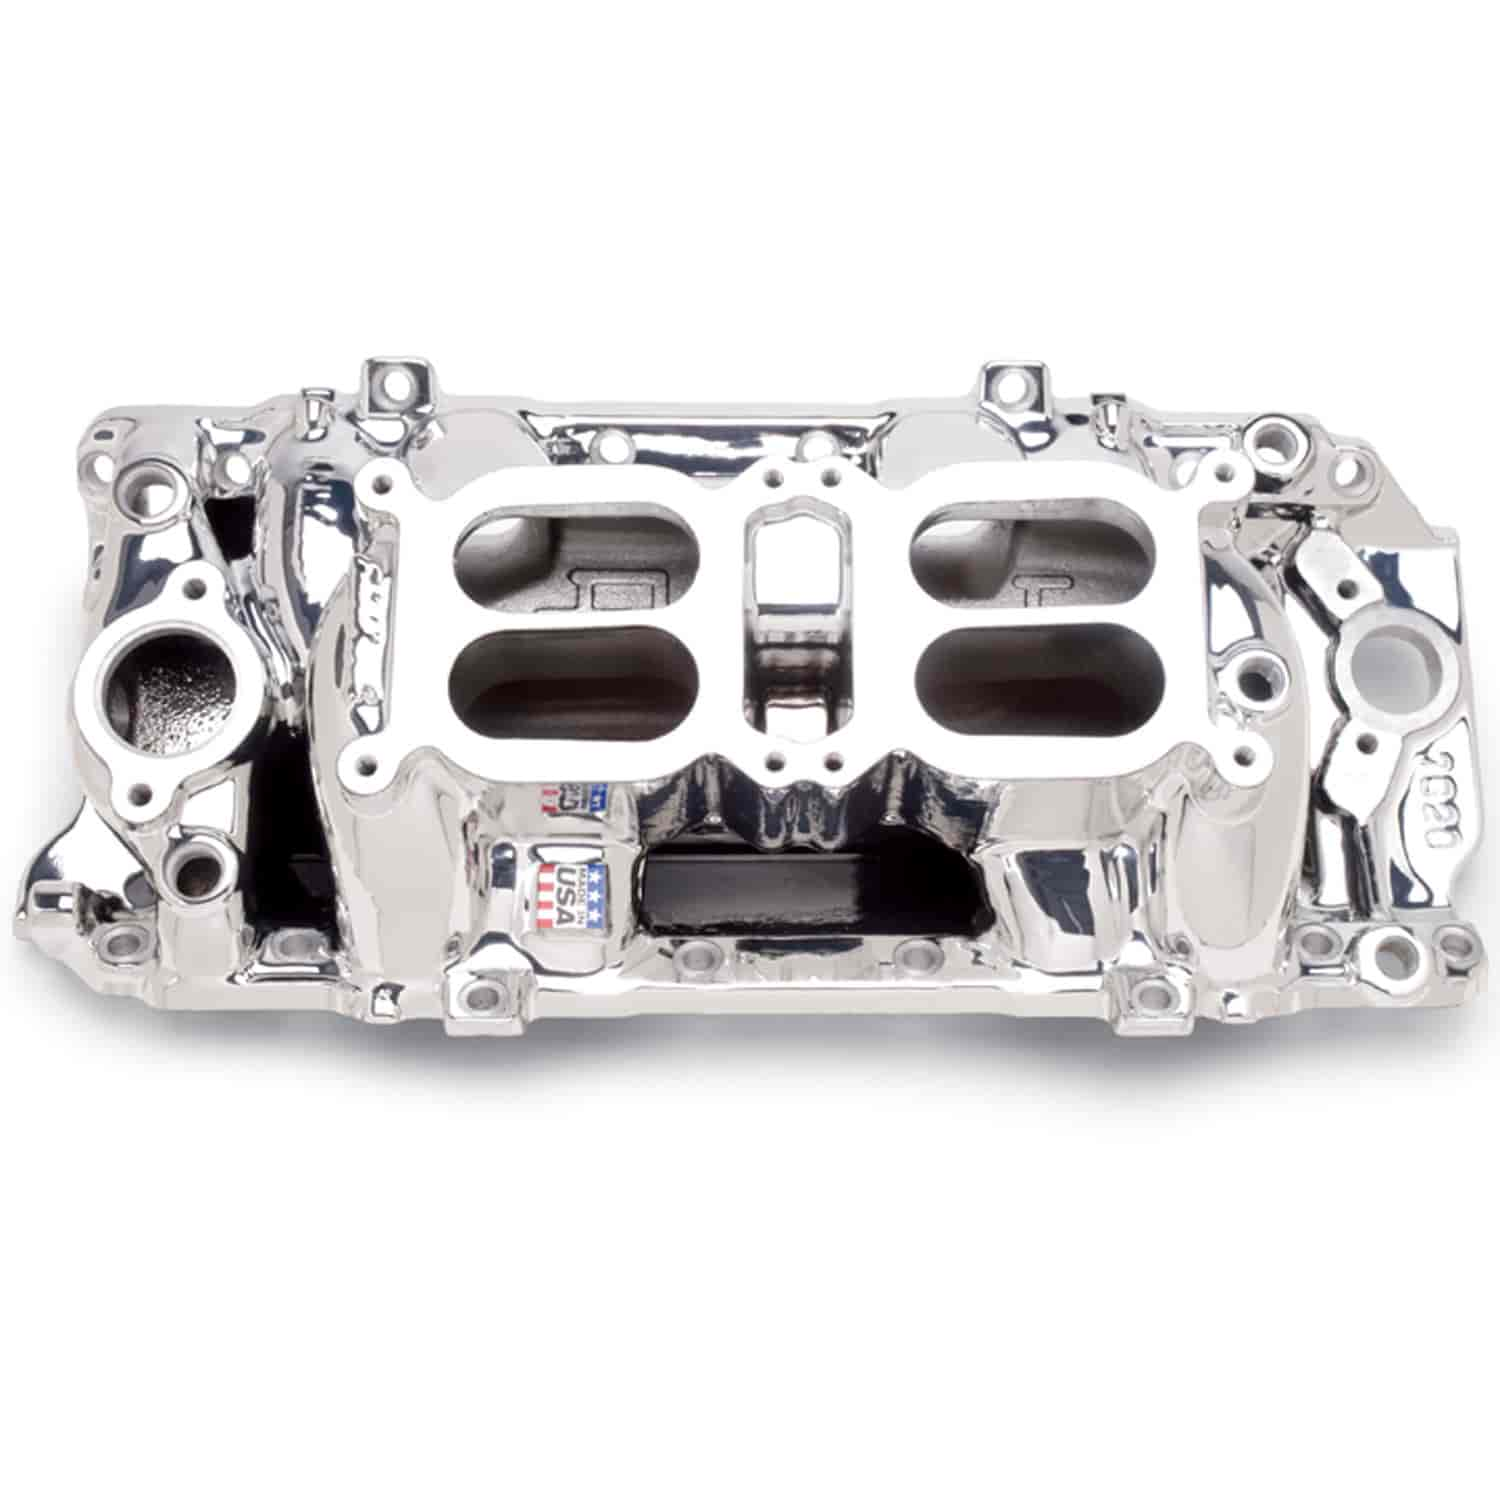 Edelbrock 75204 RPM Air-Gap Dual-Quad Manifold